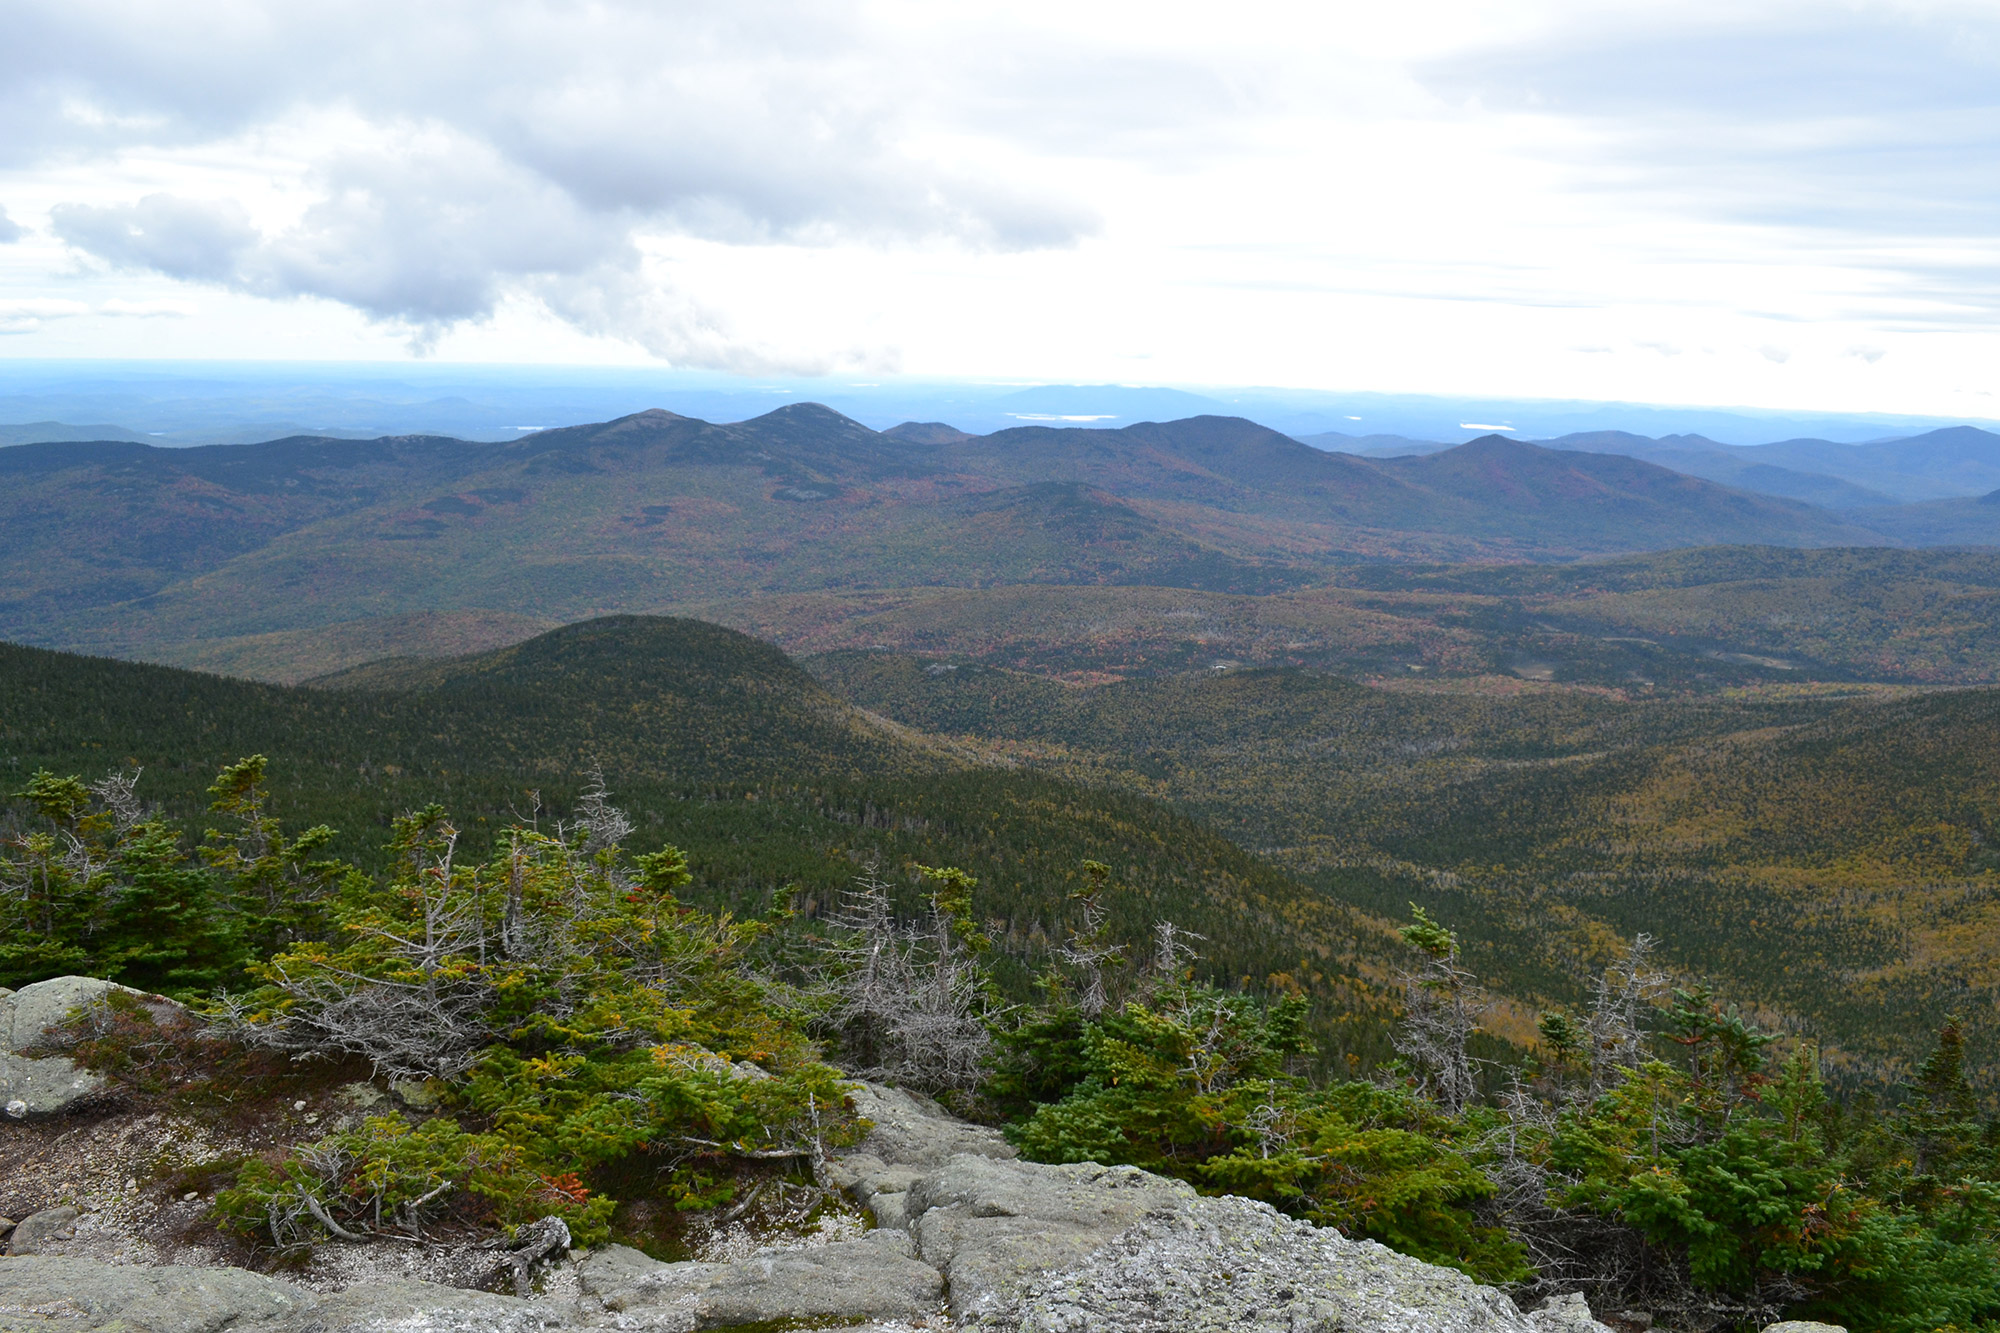 The Wild River Wilderness from Mount Hight. | Credit: Douglas Martland